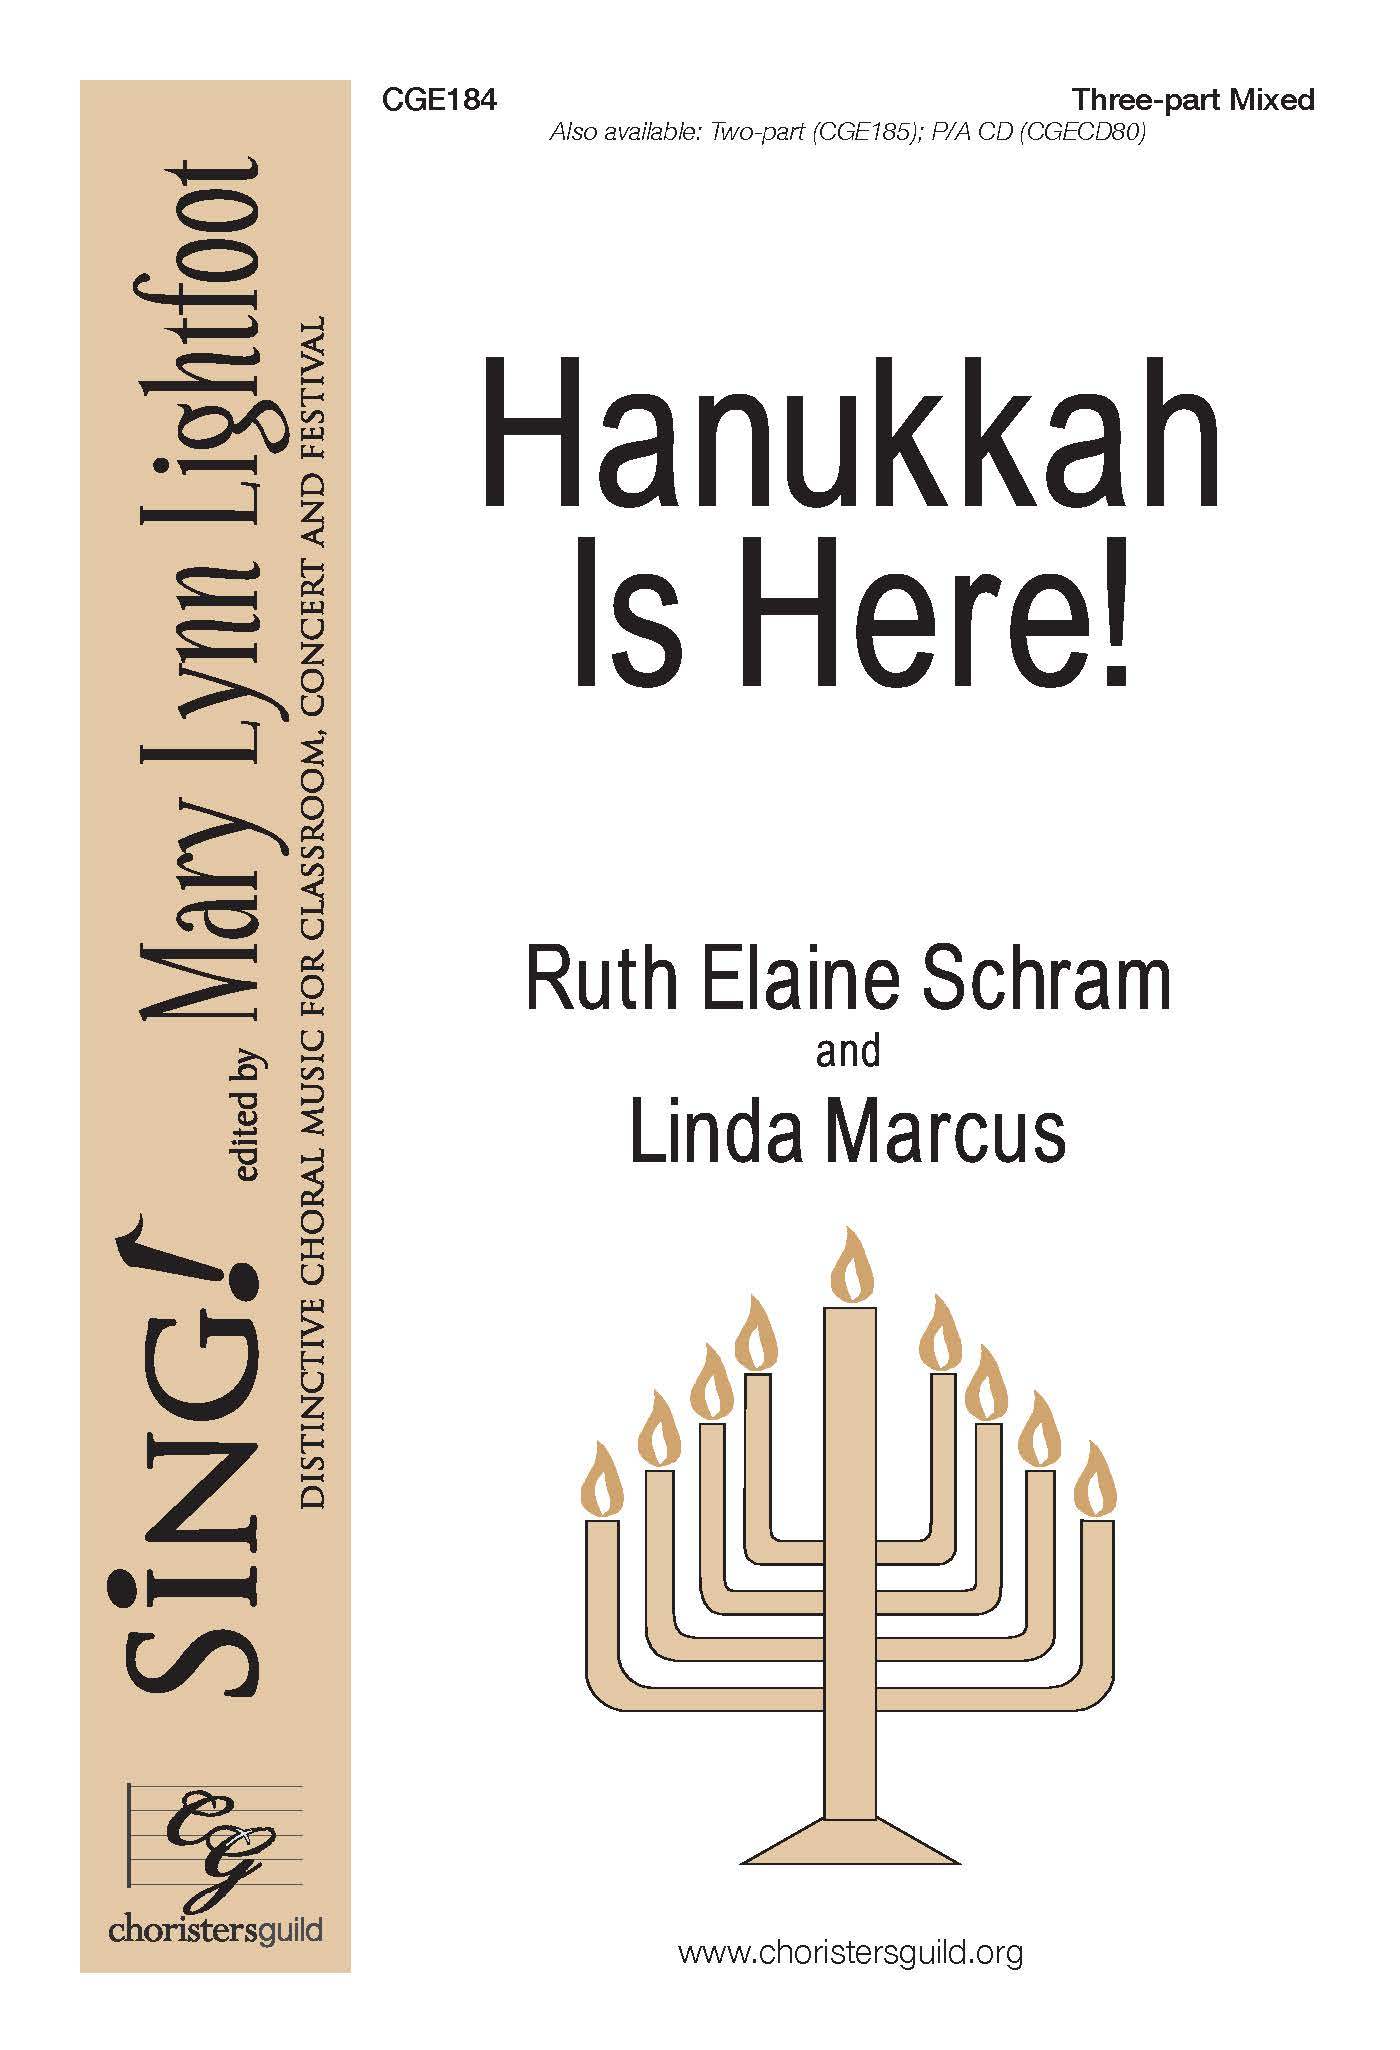 Hanukkah is Here! Three-part Mixed